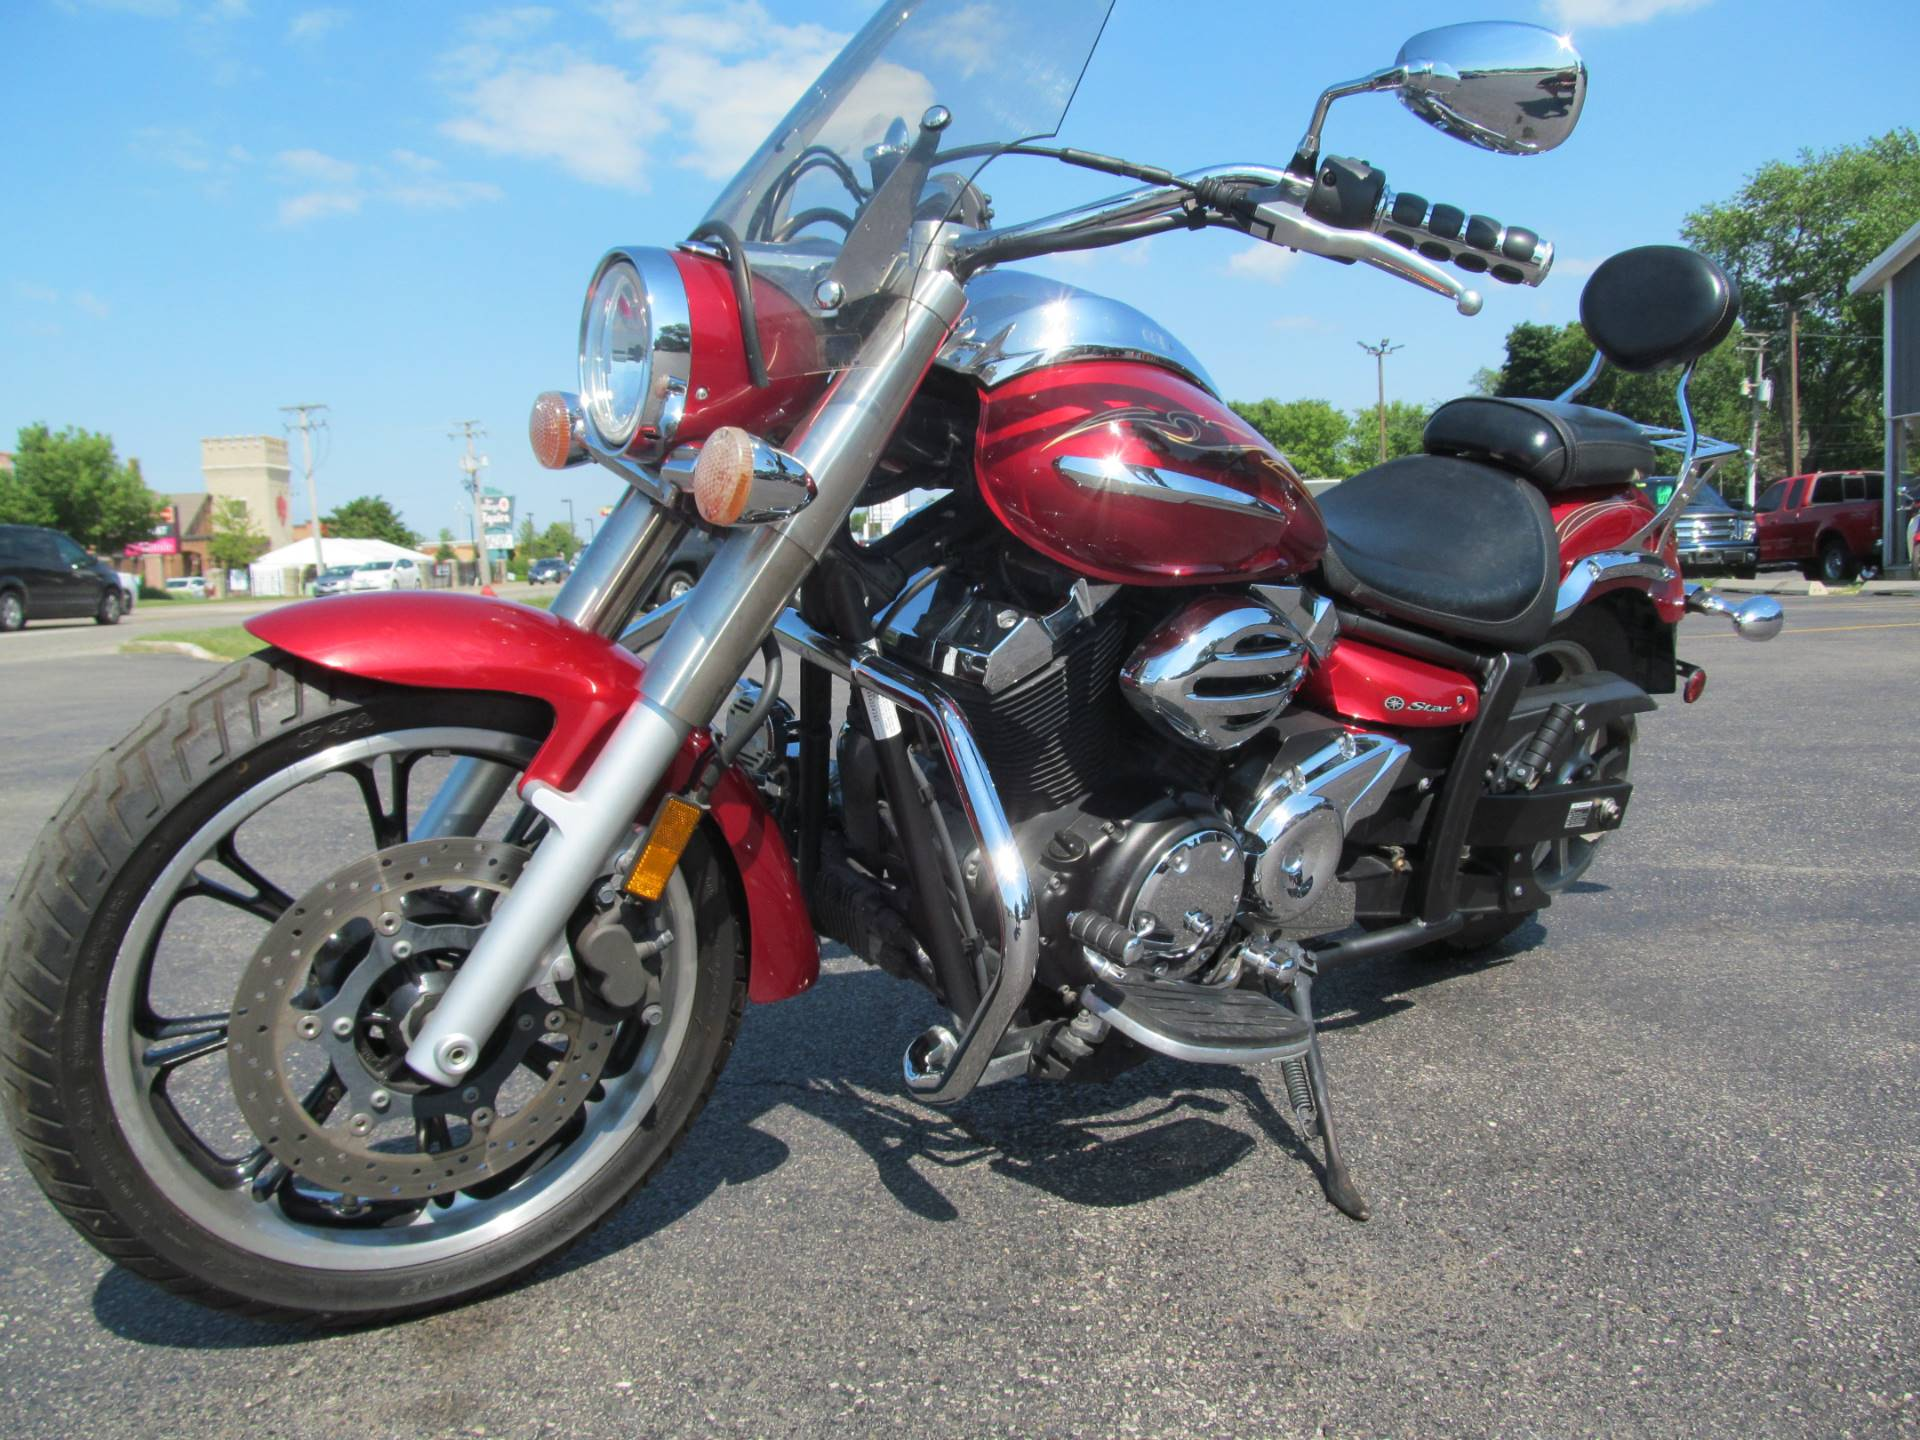 2009 Yamaha V Star 950 in Crystal Lake, Illinois - Photo 3